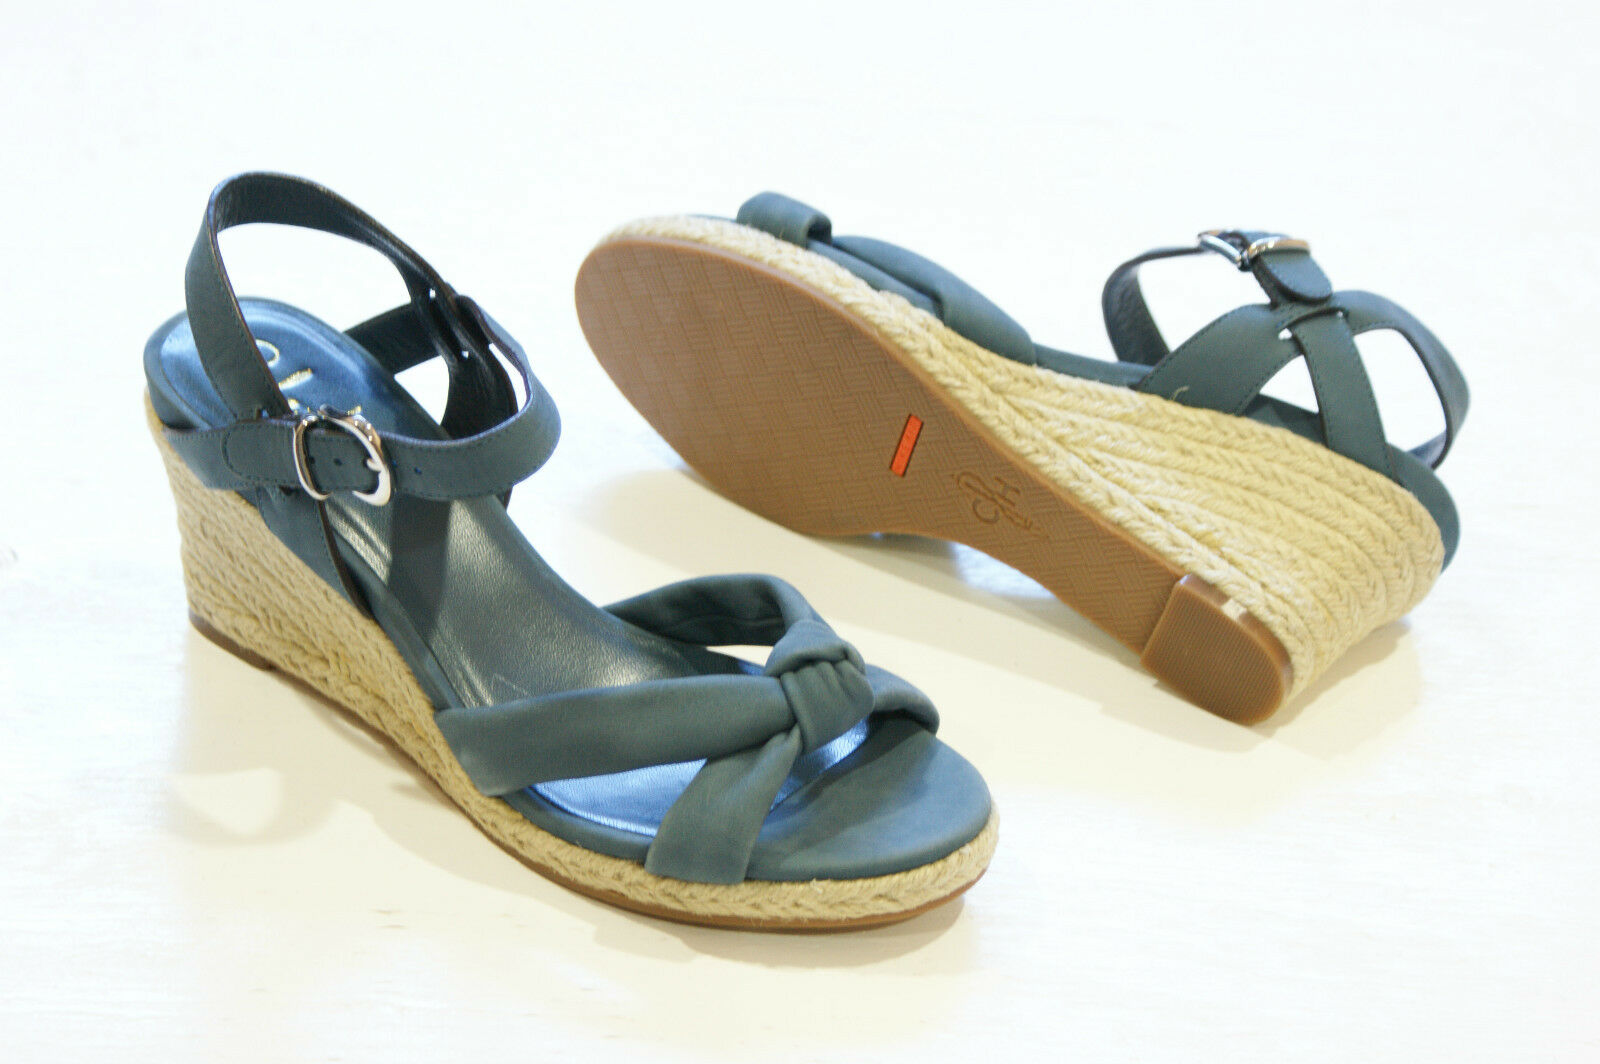 Cole Haan AIR CYNTHIA bluee Wedge Sandals shoes Womens 10 NEW IN BOX